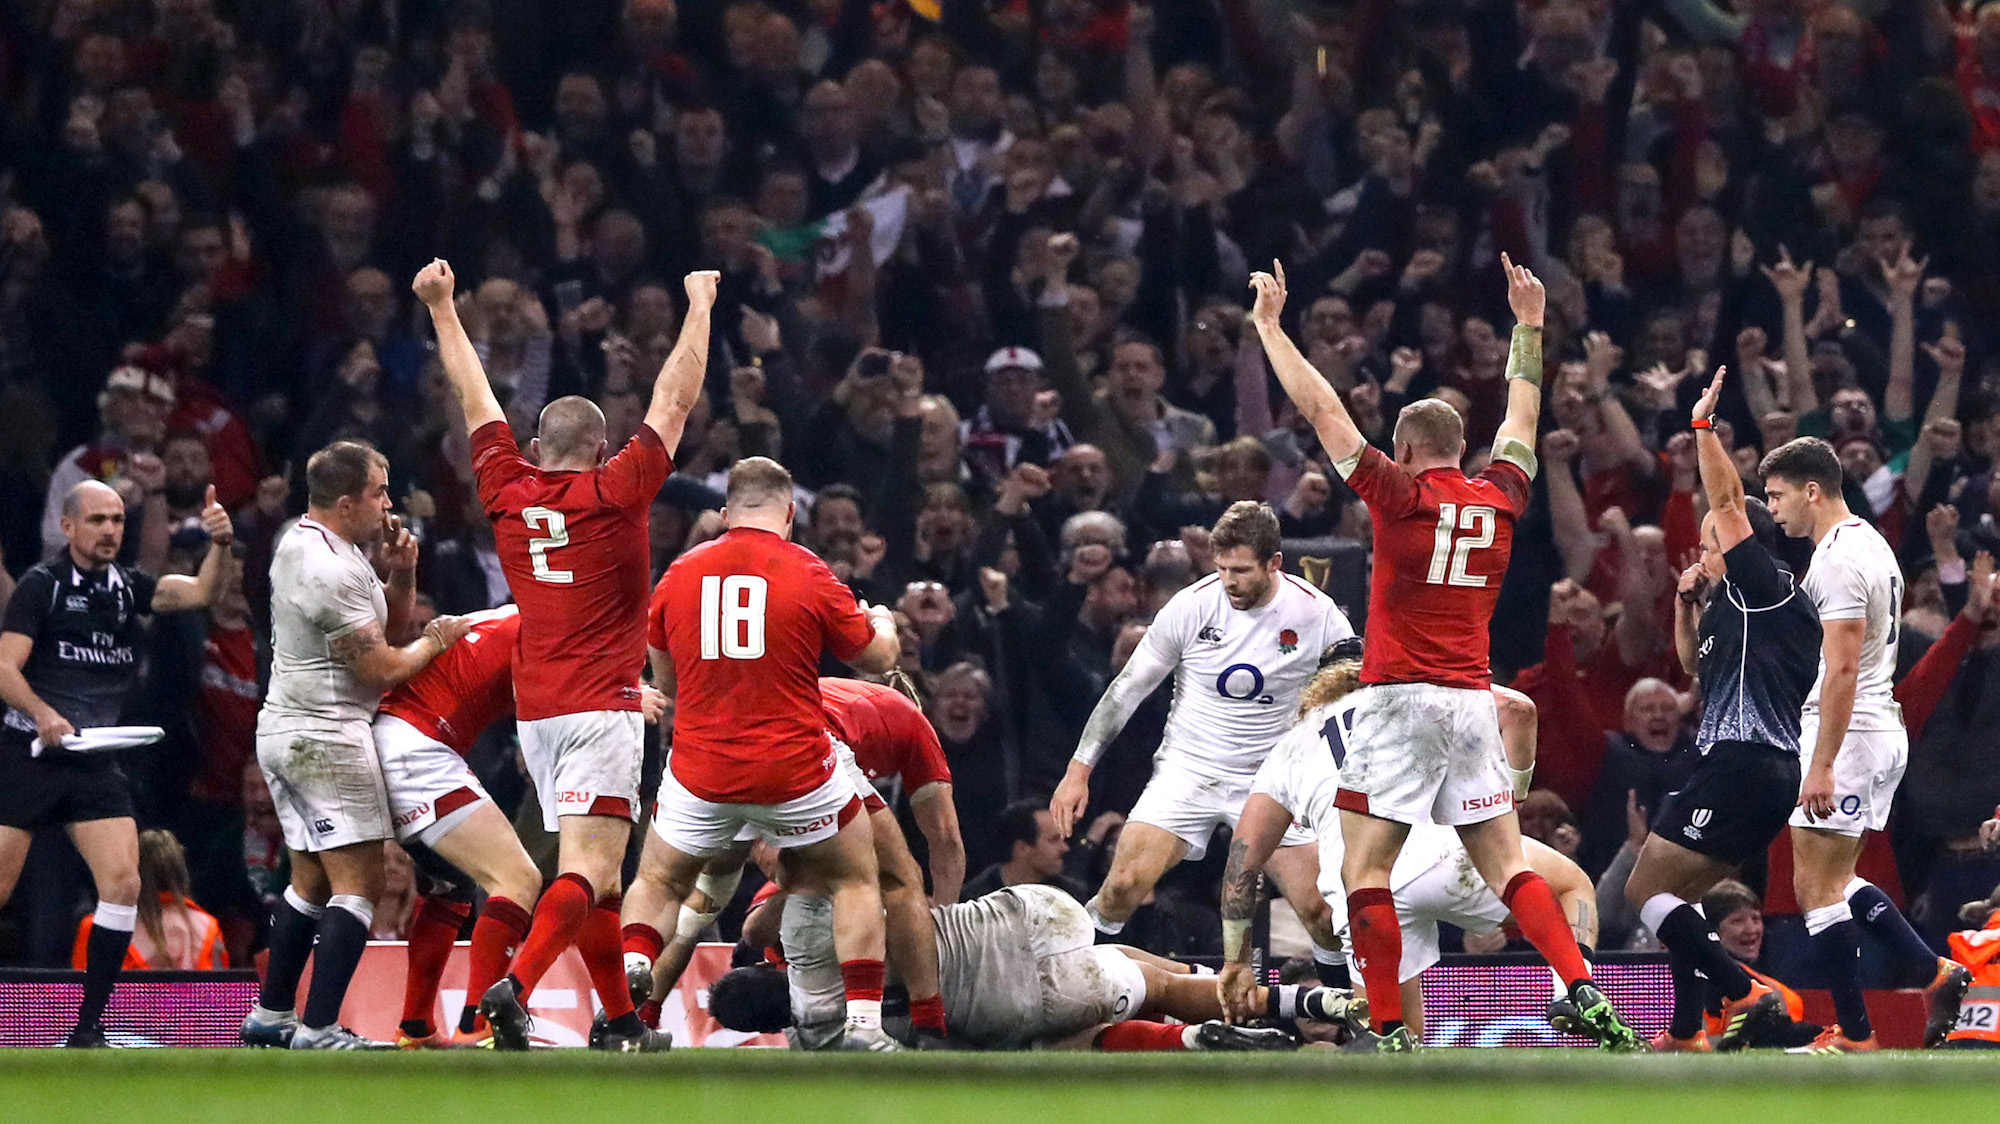 Hill's try rewards relentless Wales in Cardiff